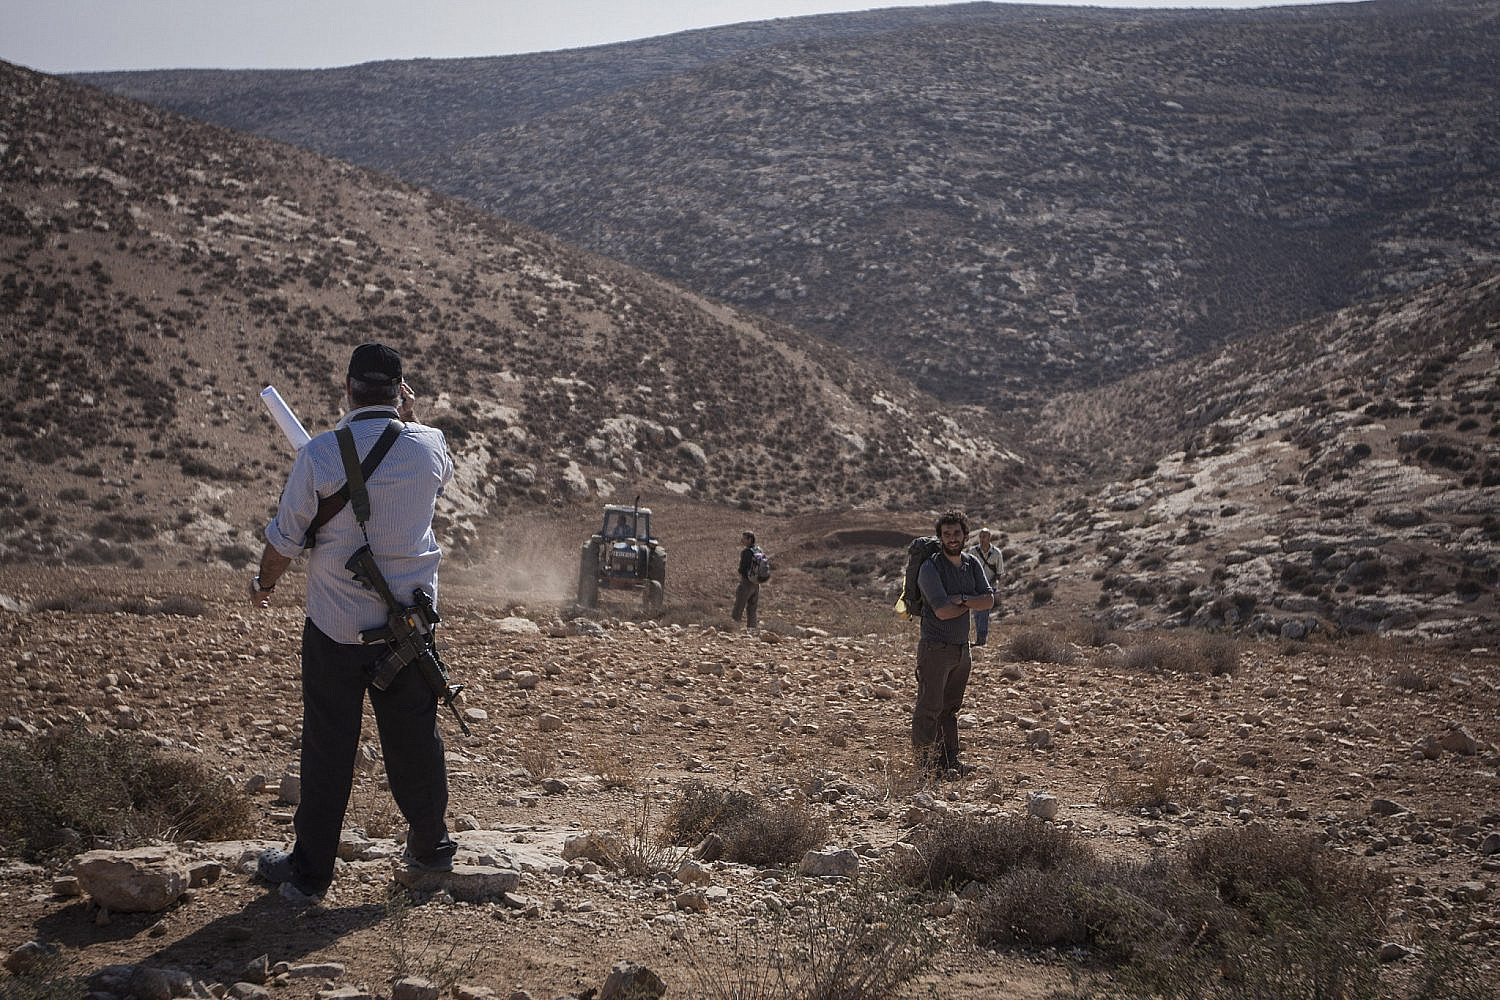 An armed Israeli settler and soldiers during a march and solidarity visit on the Palestinian agricultural lands of Tuba village, South Hebron Hills, West Bank, Dec. 1, 2007. (Shachaf Polakow/Activestills)